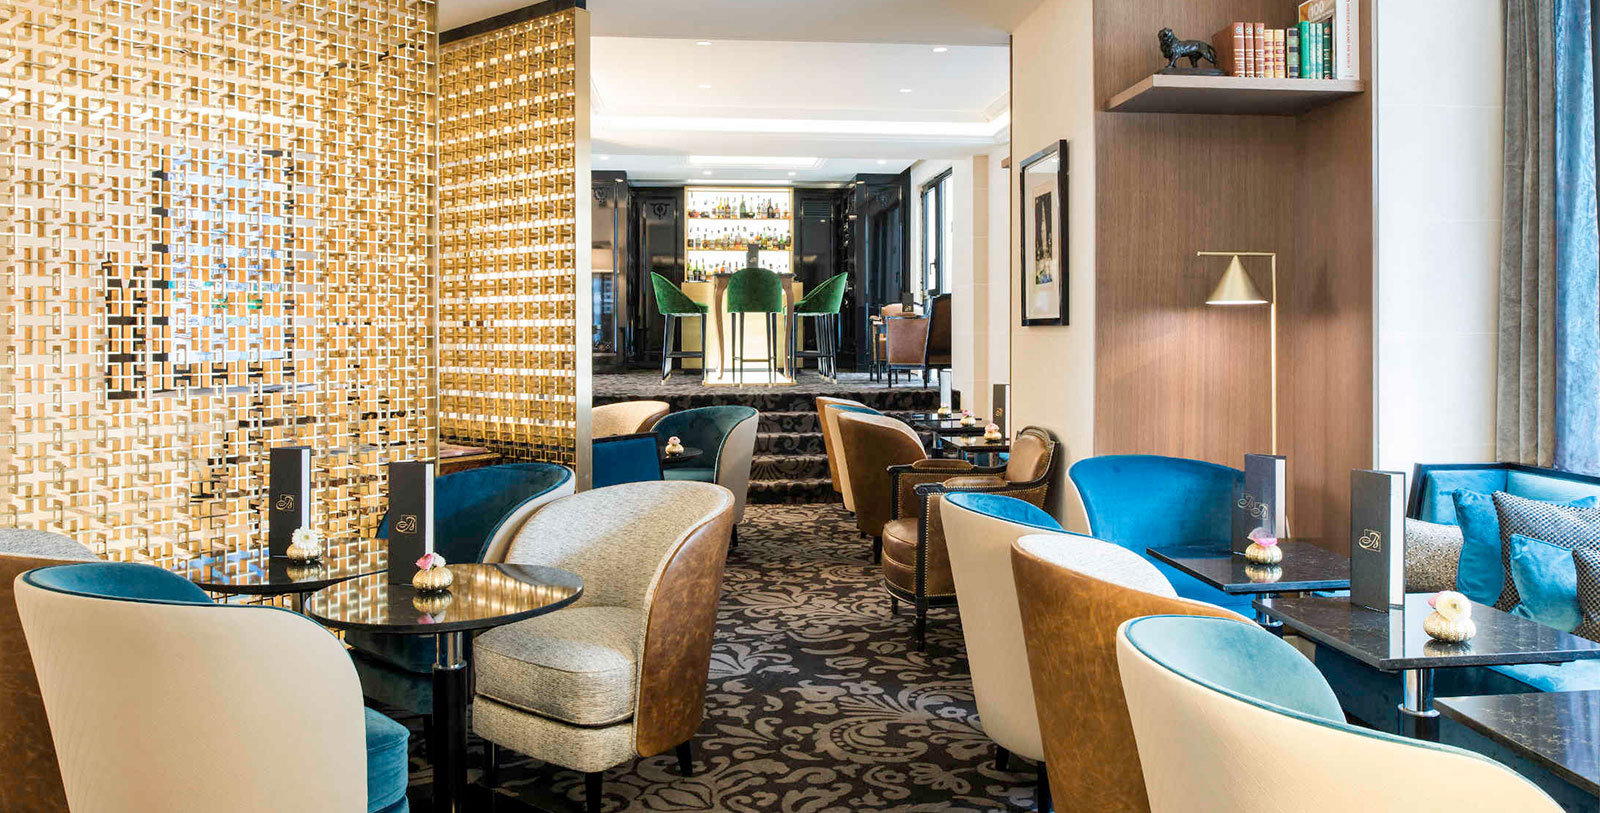 Image of 88B Bar Dining Area Sofitel Paris Baltimore Tour Eiffel, 1892, Member of Historic Hotels Worldwide, in Paris, France, Dining